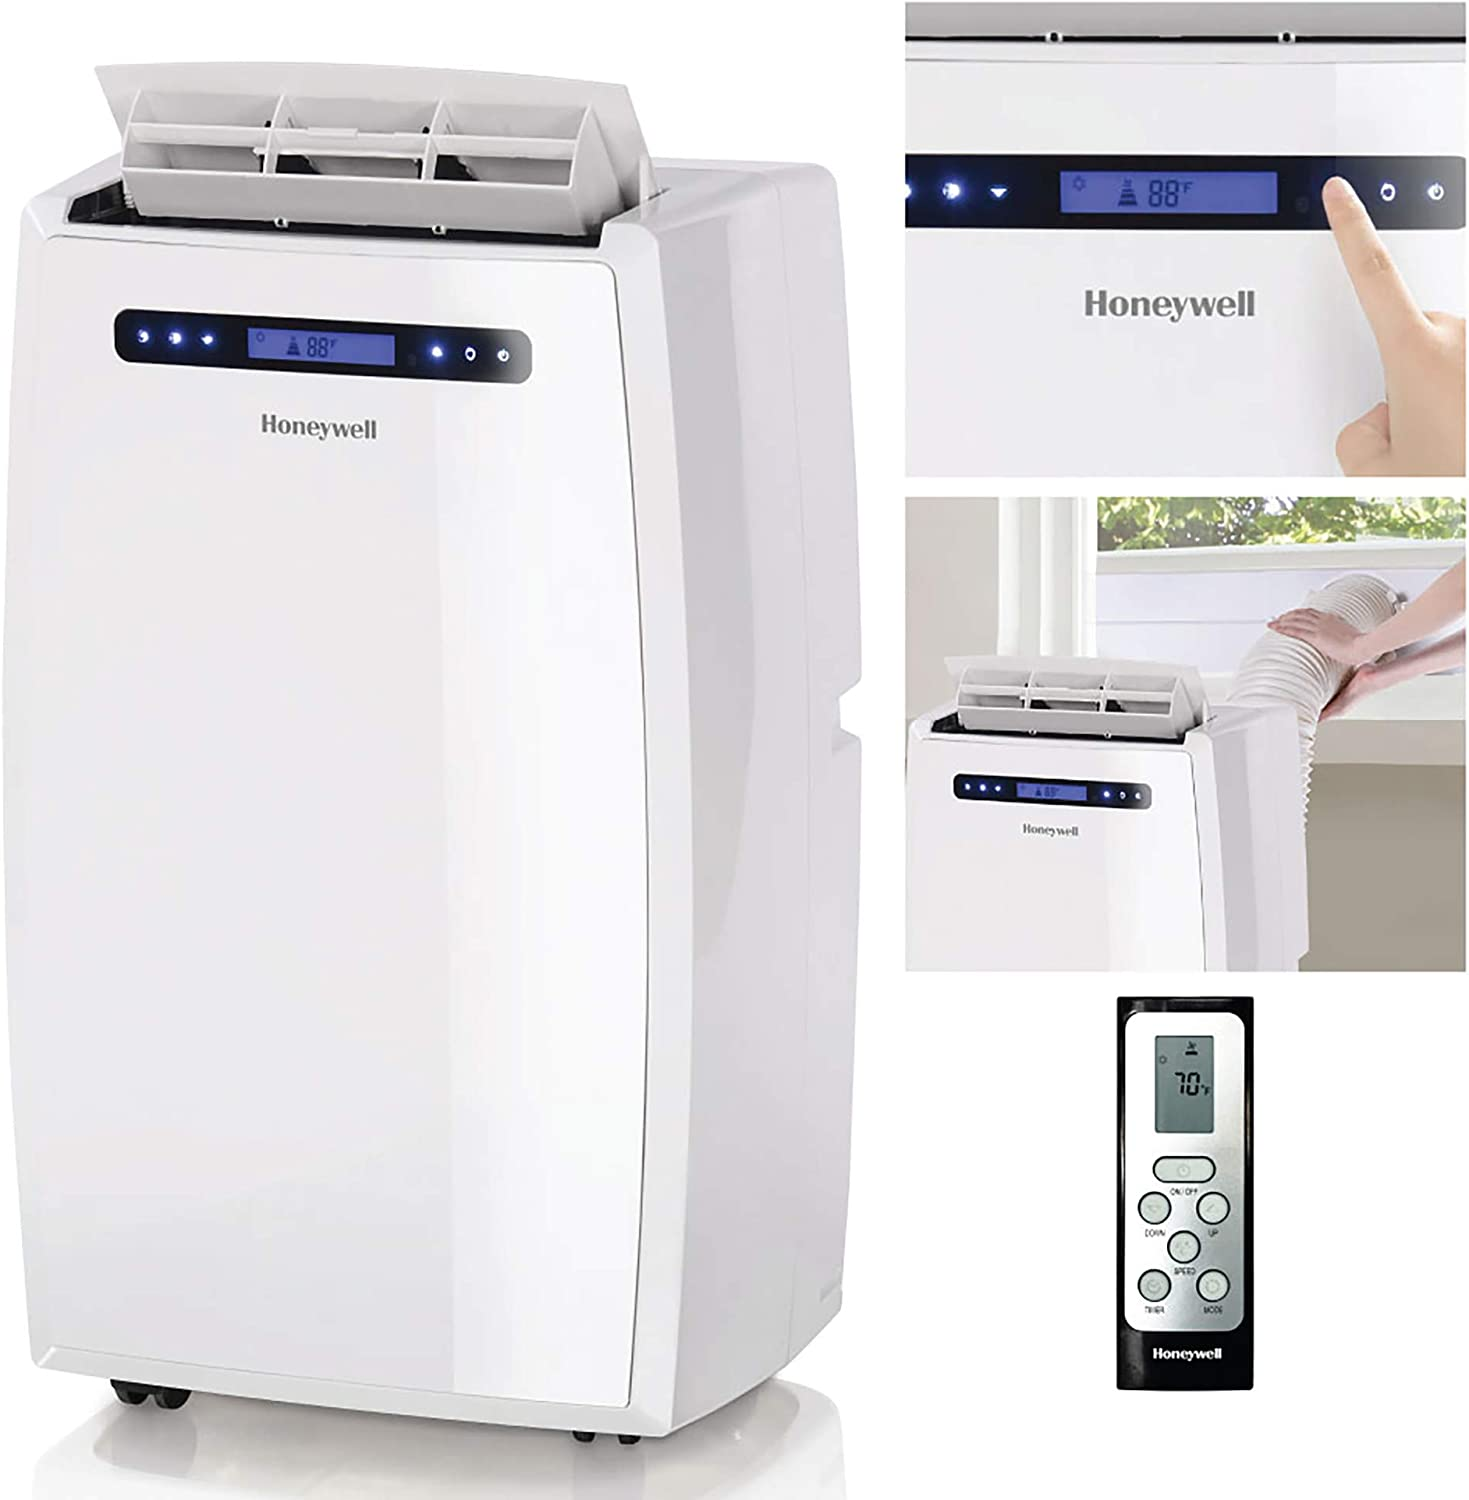 Honeywell (White MN14CCSWW Portable Air Conditioner with Dehumidifier, Fan with Remote Control & Advanced LCD Display Cools Rooms Up to 550-700 Sq. Ft